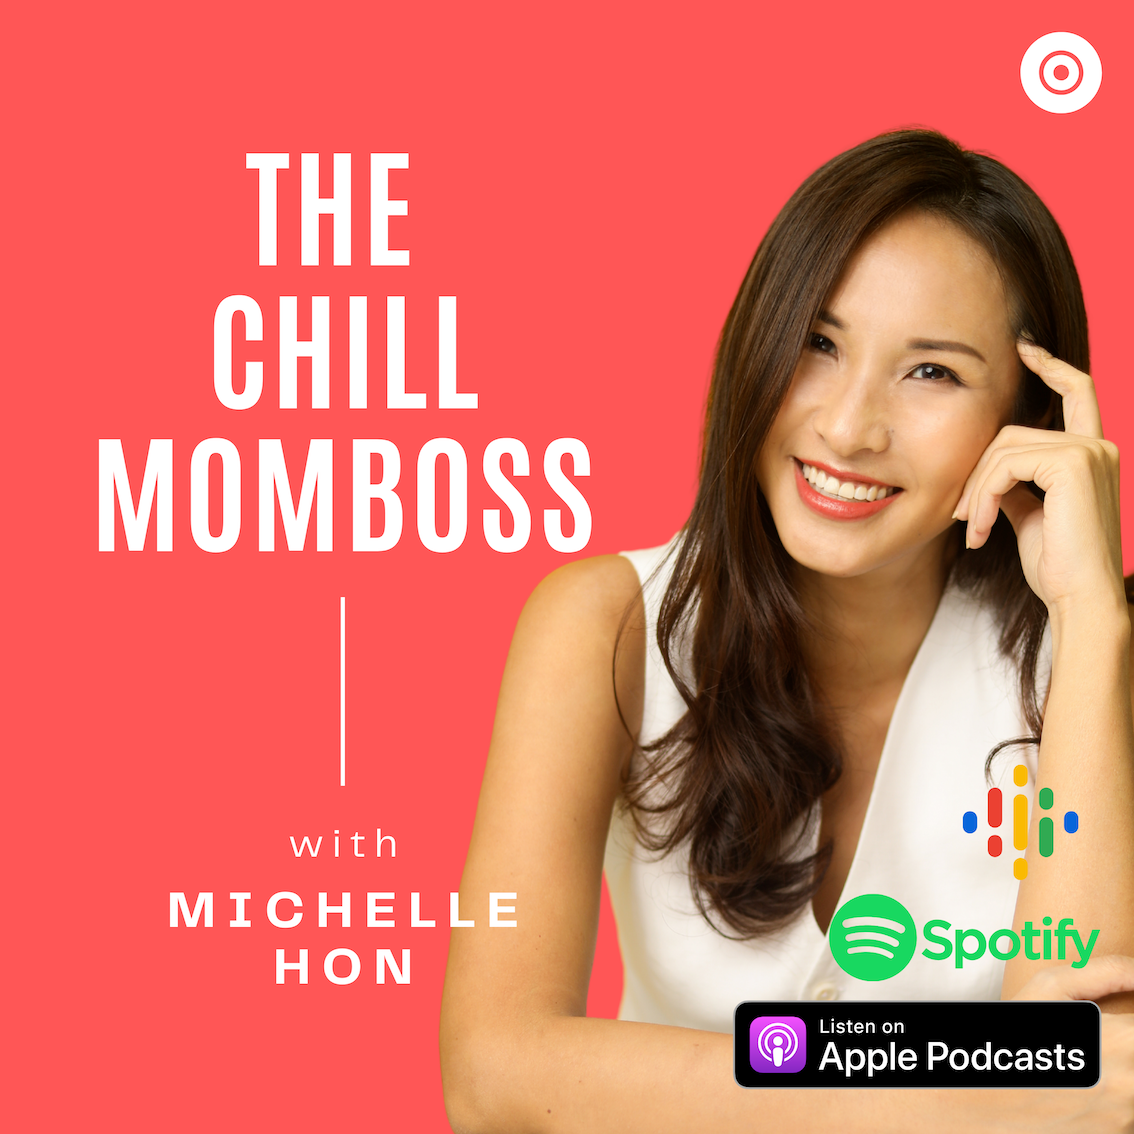 The Chill MomBoss podcast